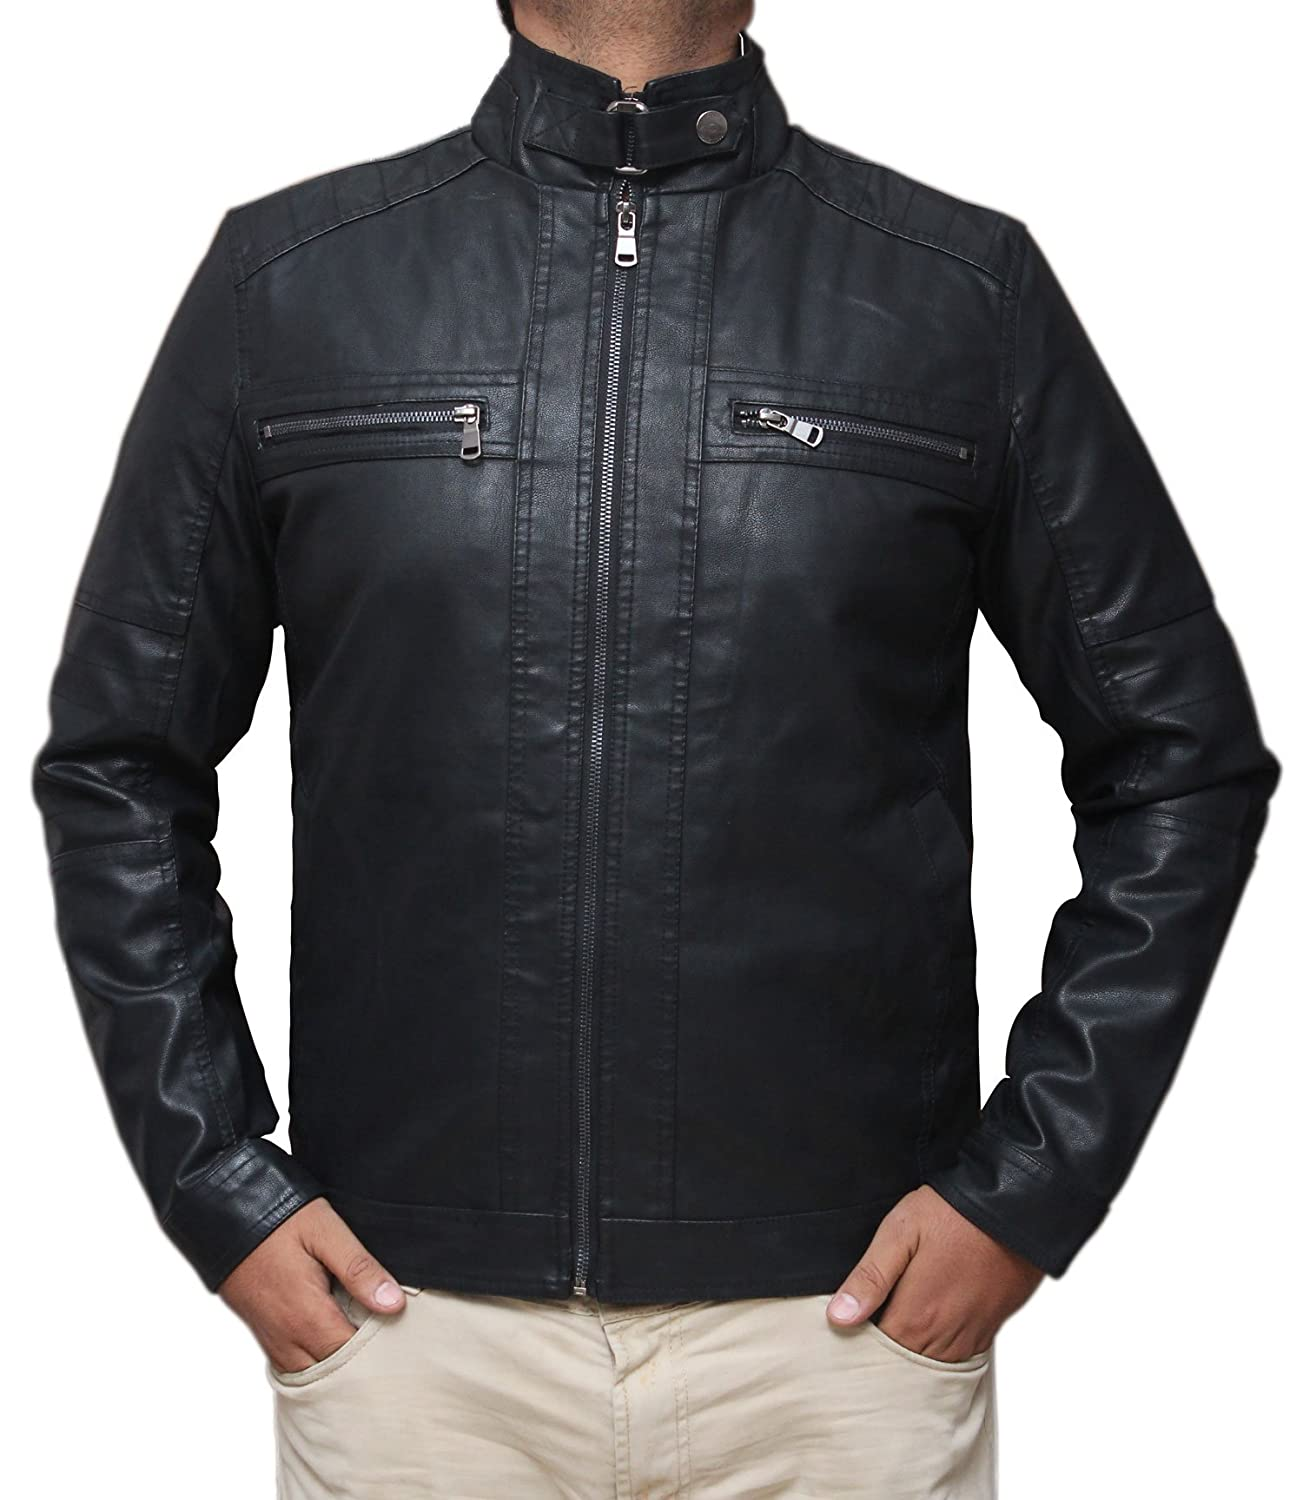 08e7b5bfed A fashionable and stylish eye-catching leather jackets made from high  quality Leather